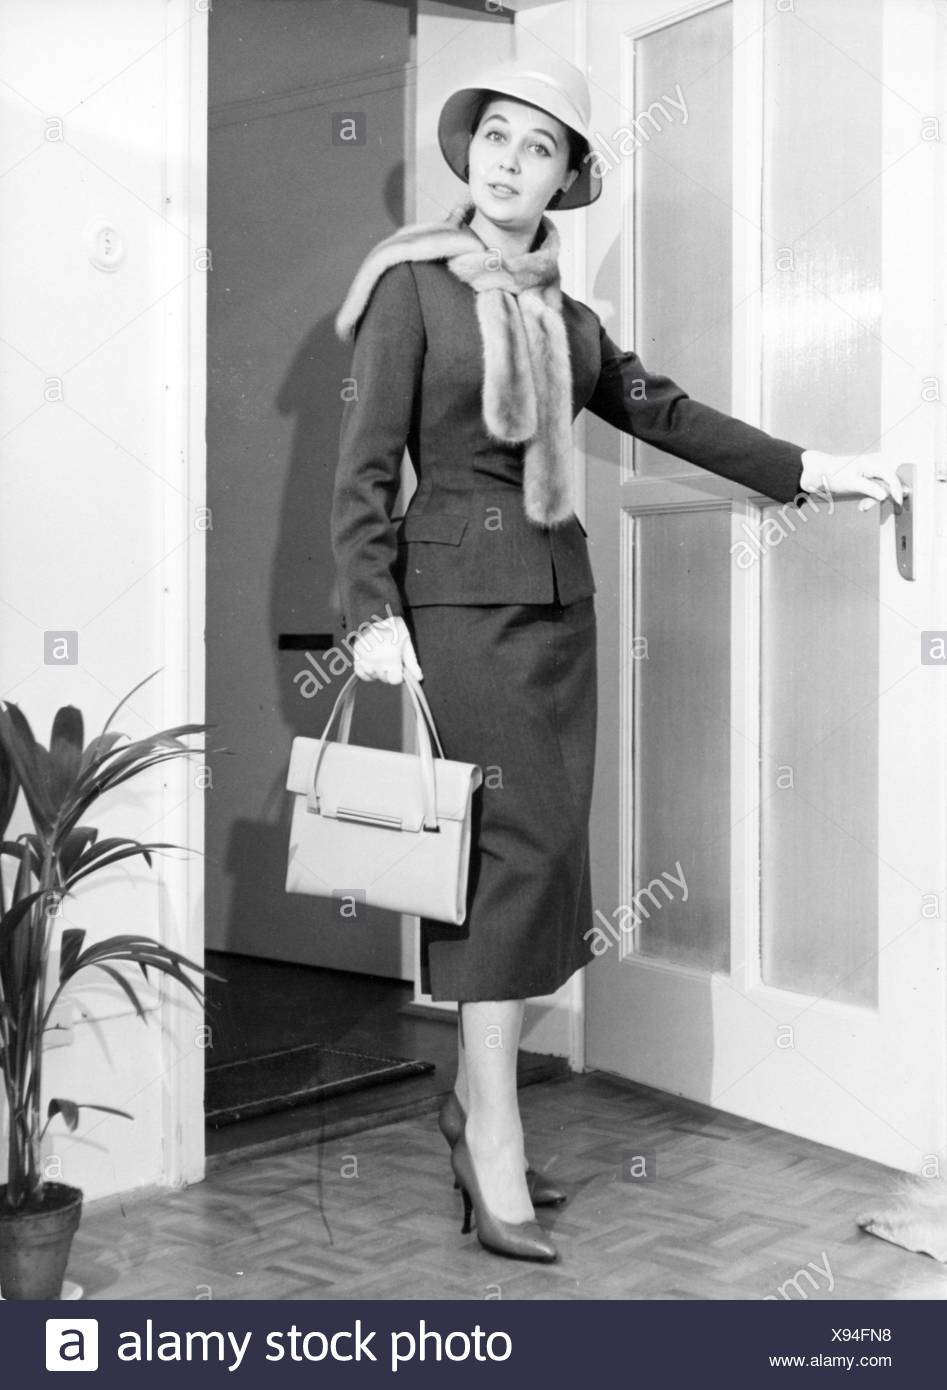 fashion, 1950s, Young woman in woman's suit by Barbara Benkö, 1957, Munich, 1957, 20th century, 50s, Germany, clothes, outfit, outfits, ladies' fashion, woman's suit, costume, costumes, headpiece, headpieces, hat, hats, fur stole, stole, fur, furs, handbag, pocketbook, purse, handbags, pocketbooks, purses, bag, bags, ladies' shoes, fashion for women, women's clothing, mannequin, fashion model, mannequins, fashion models, fashion, posture, posing, pose, door, doors, woman, women, historic, historical, woman, women, female, people, Benkoe, Benkö, Benko, Additional-Rights-Clearences-NA - Stock Image